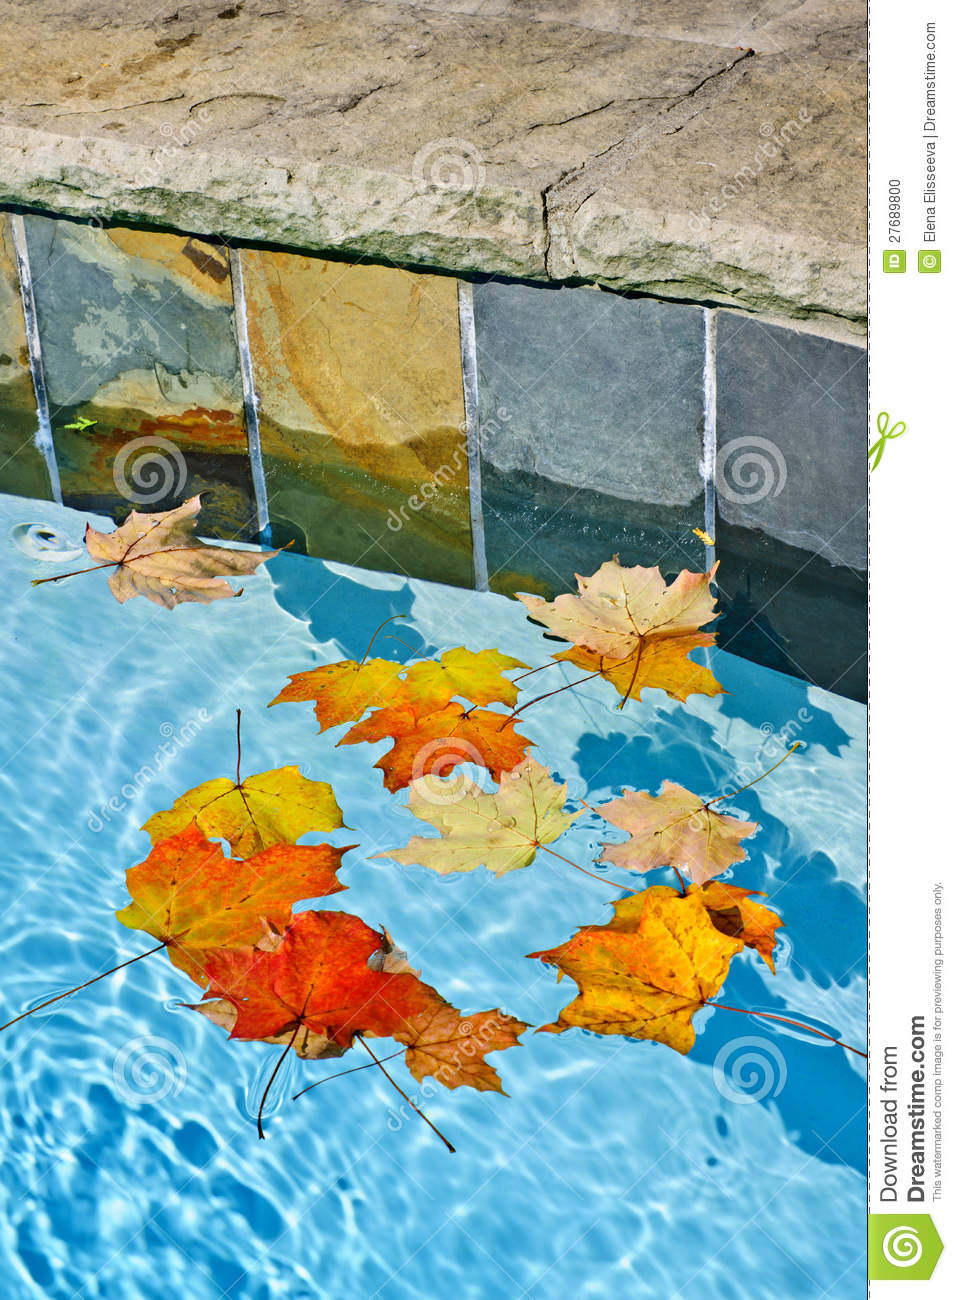 Fall Leaves Floating In Pool Stock Photo Image 27689800